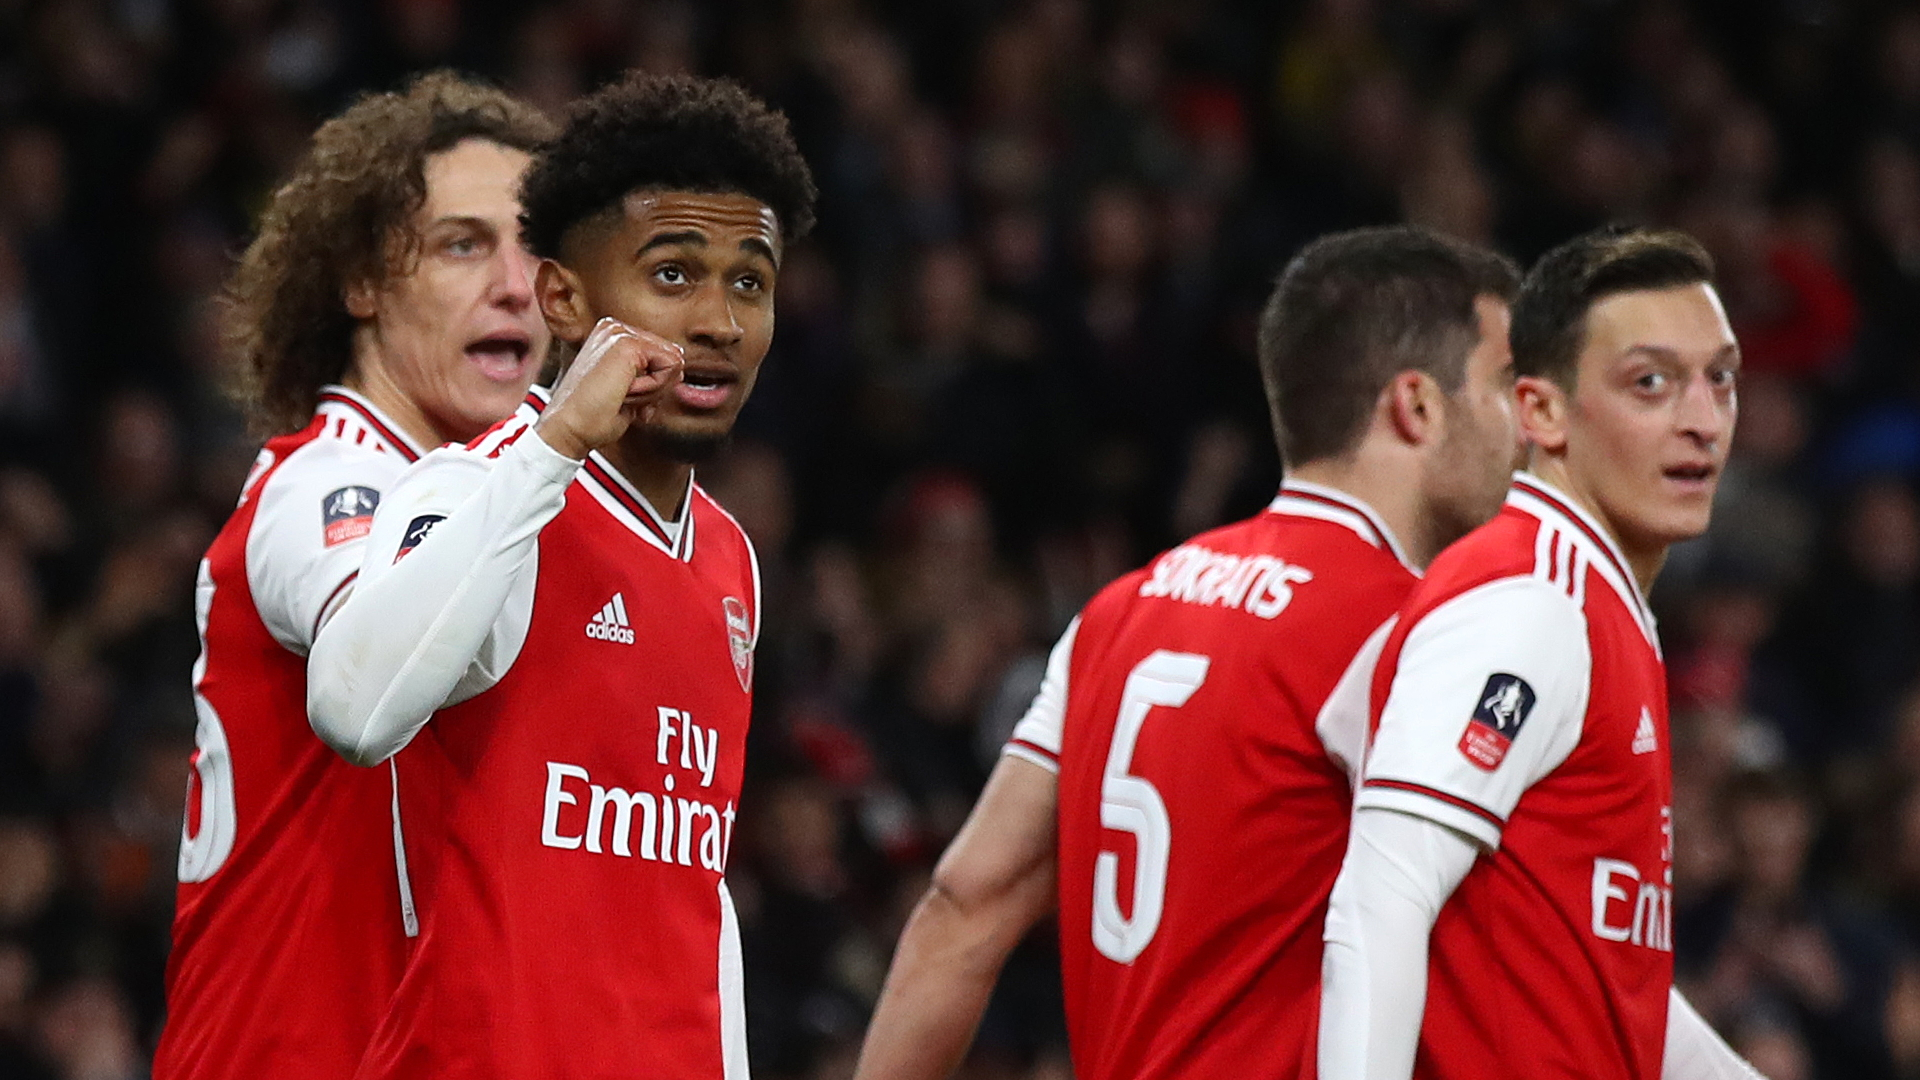 'Arteta shouted a lot at half-time' - Lacazette says rant inspired Arsenal revival